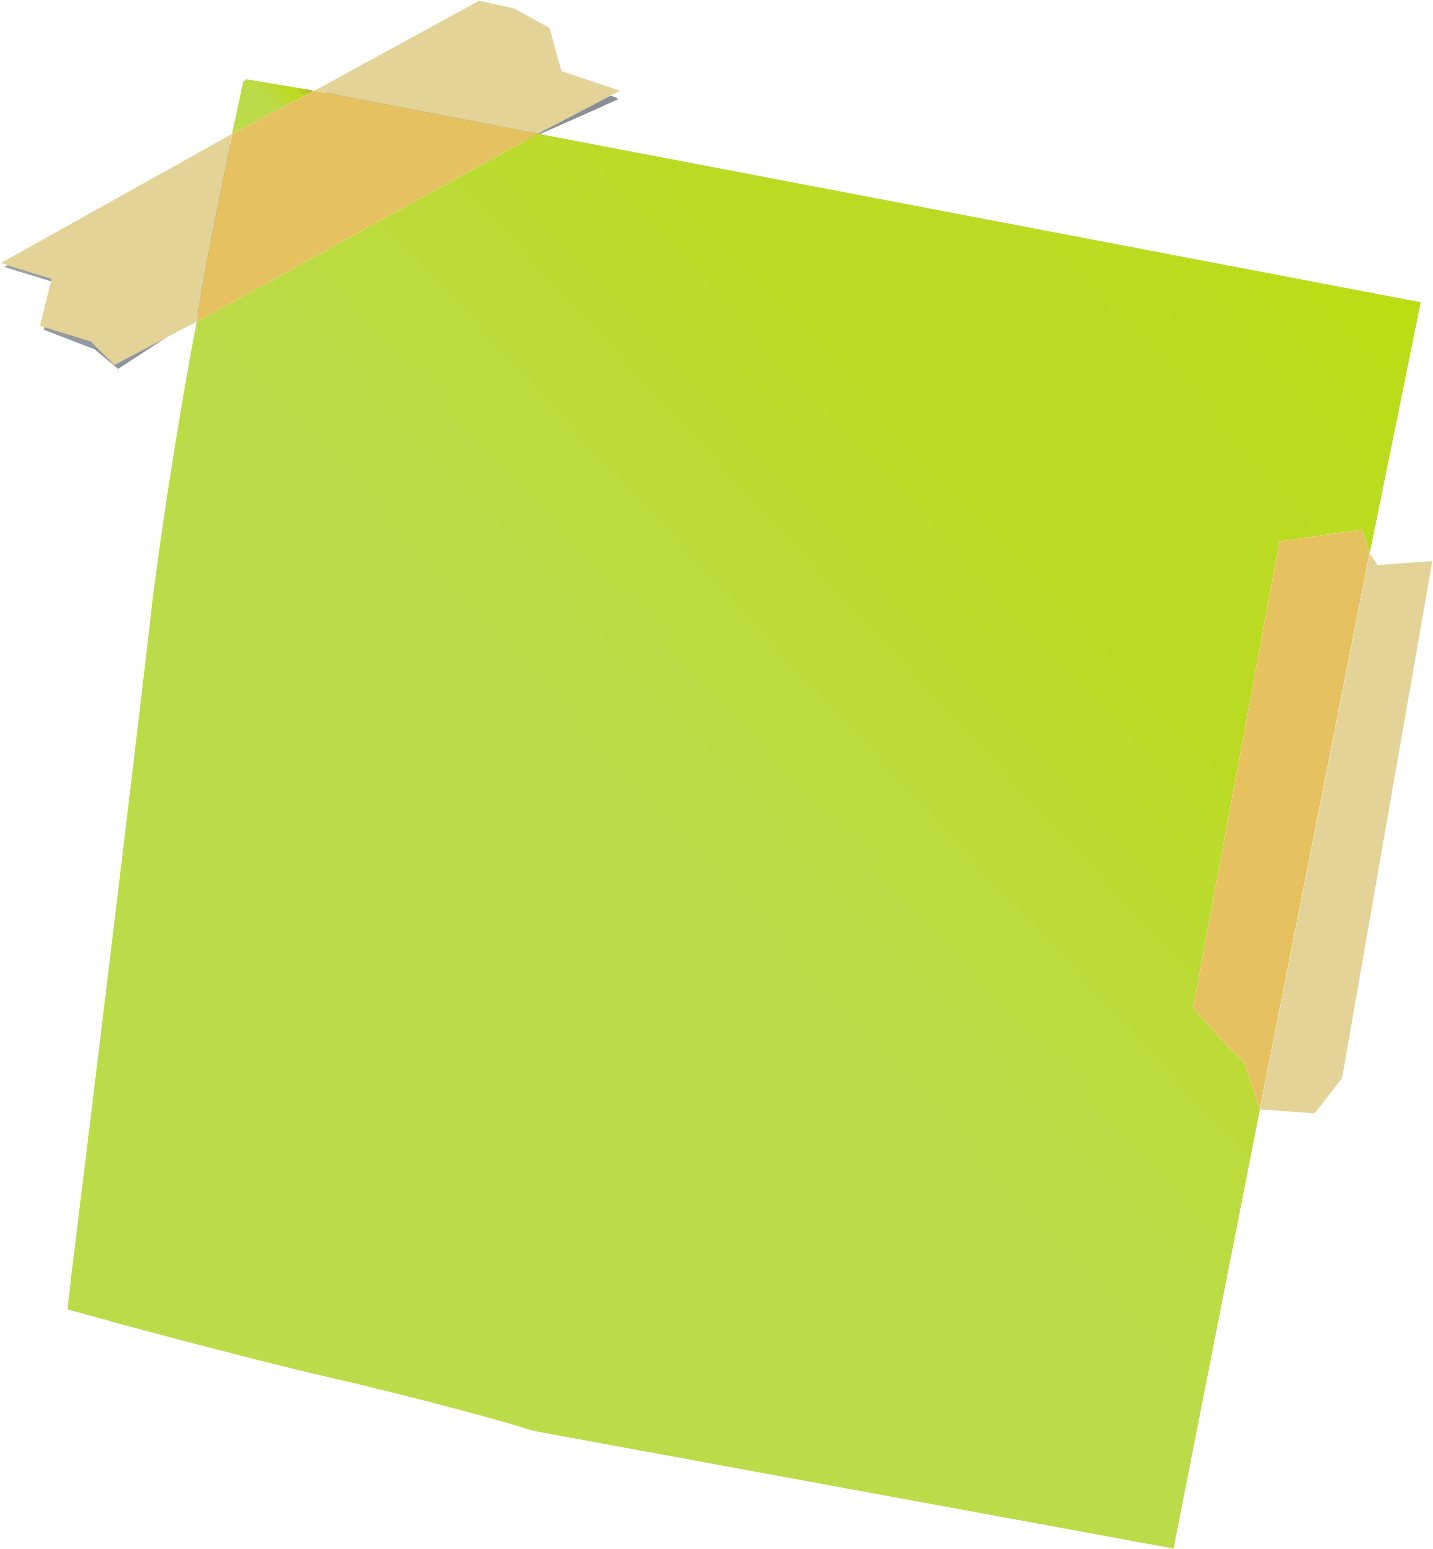 Transparent file web icons. Colorful sticky notes png jpg royalty free